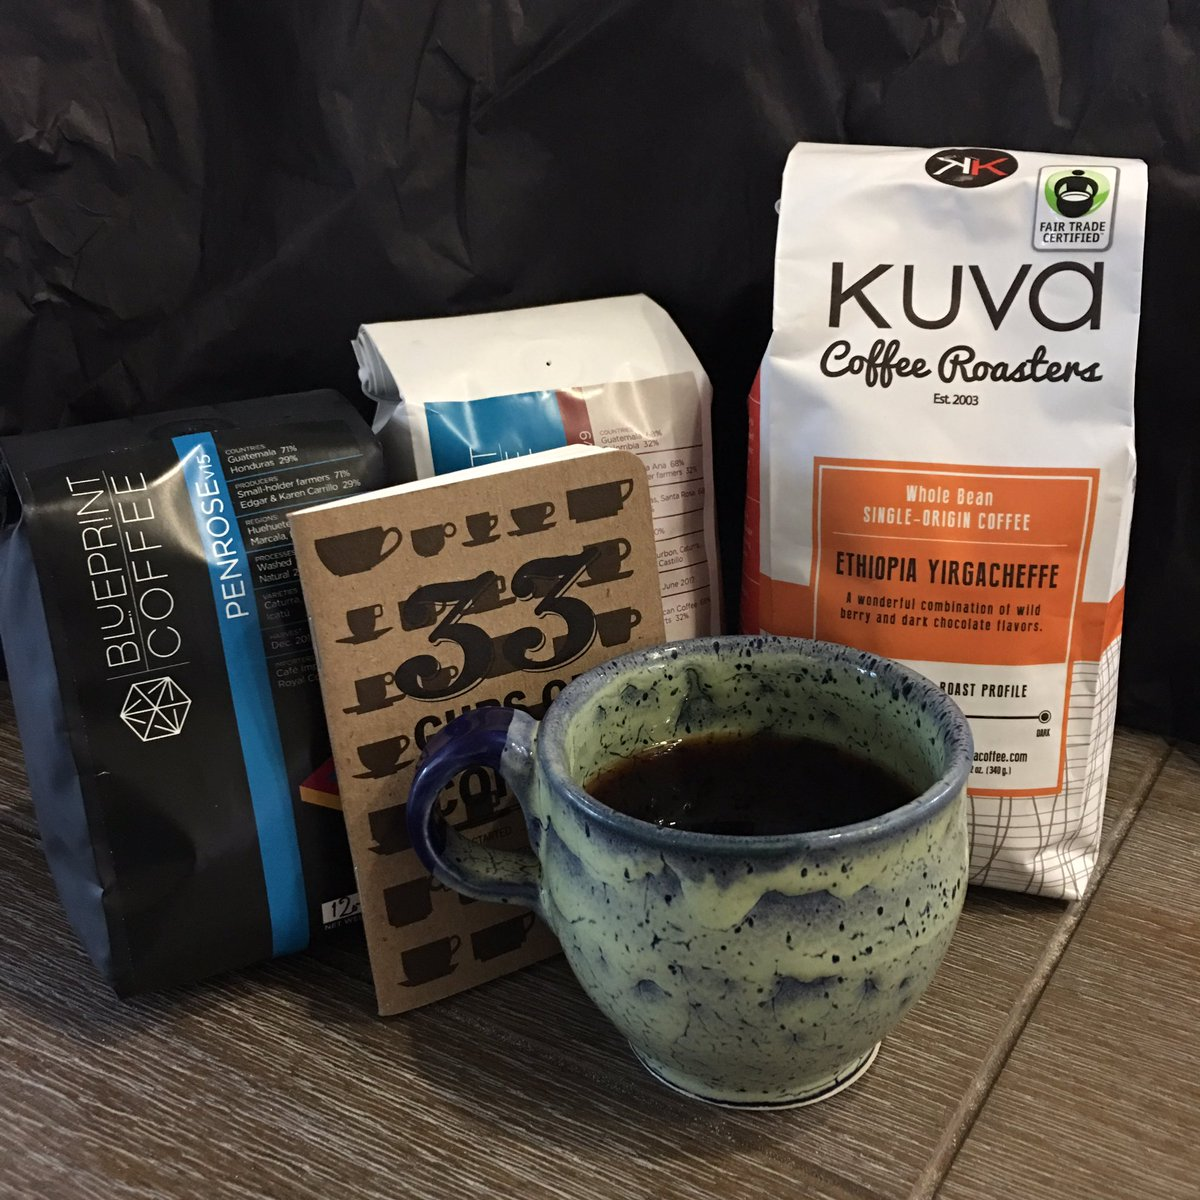 Kuva coffee roasters kuvacoffee twitter larder cupboard blueprint coffee kuva coffee roasters and 33 books co malvernweather Gallery